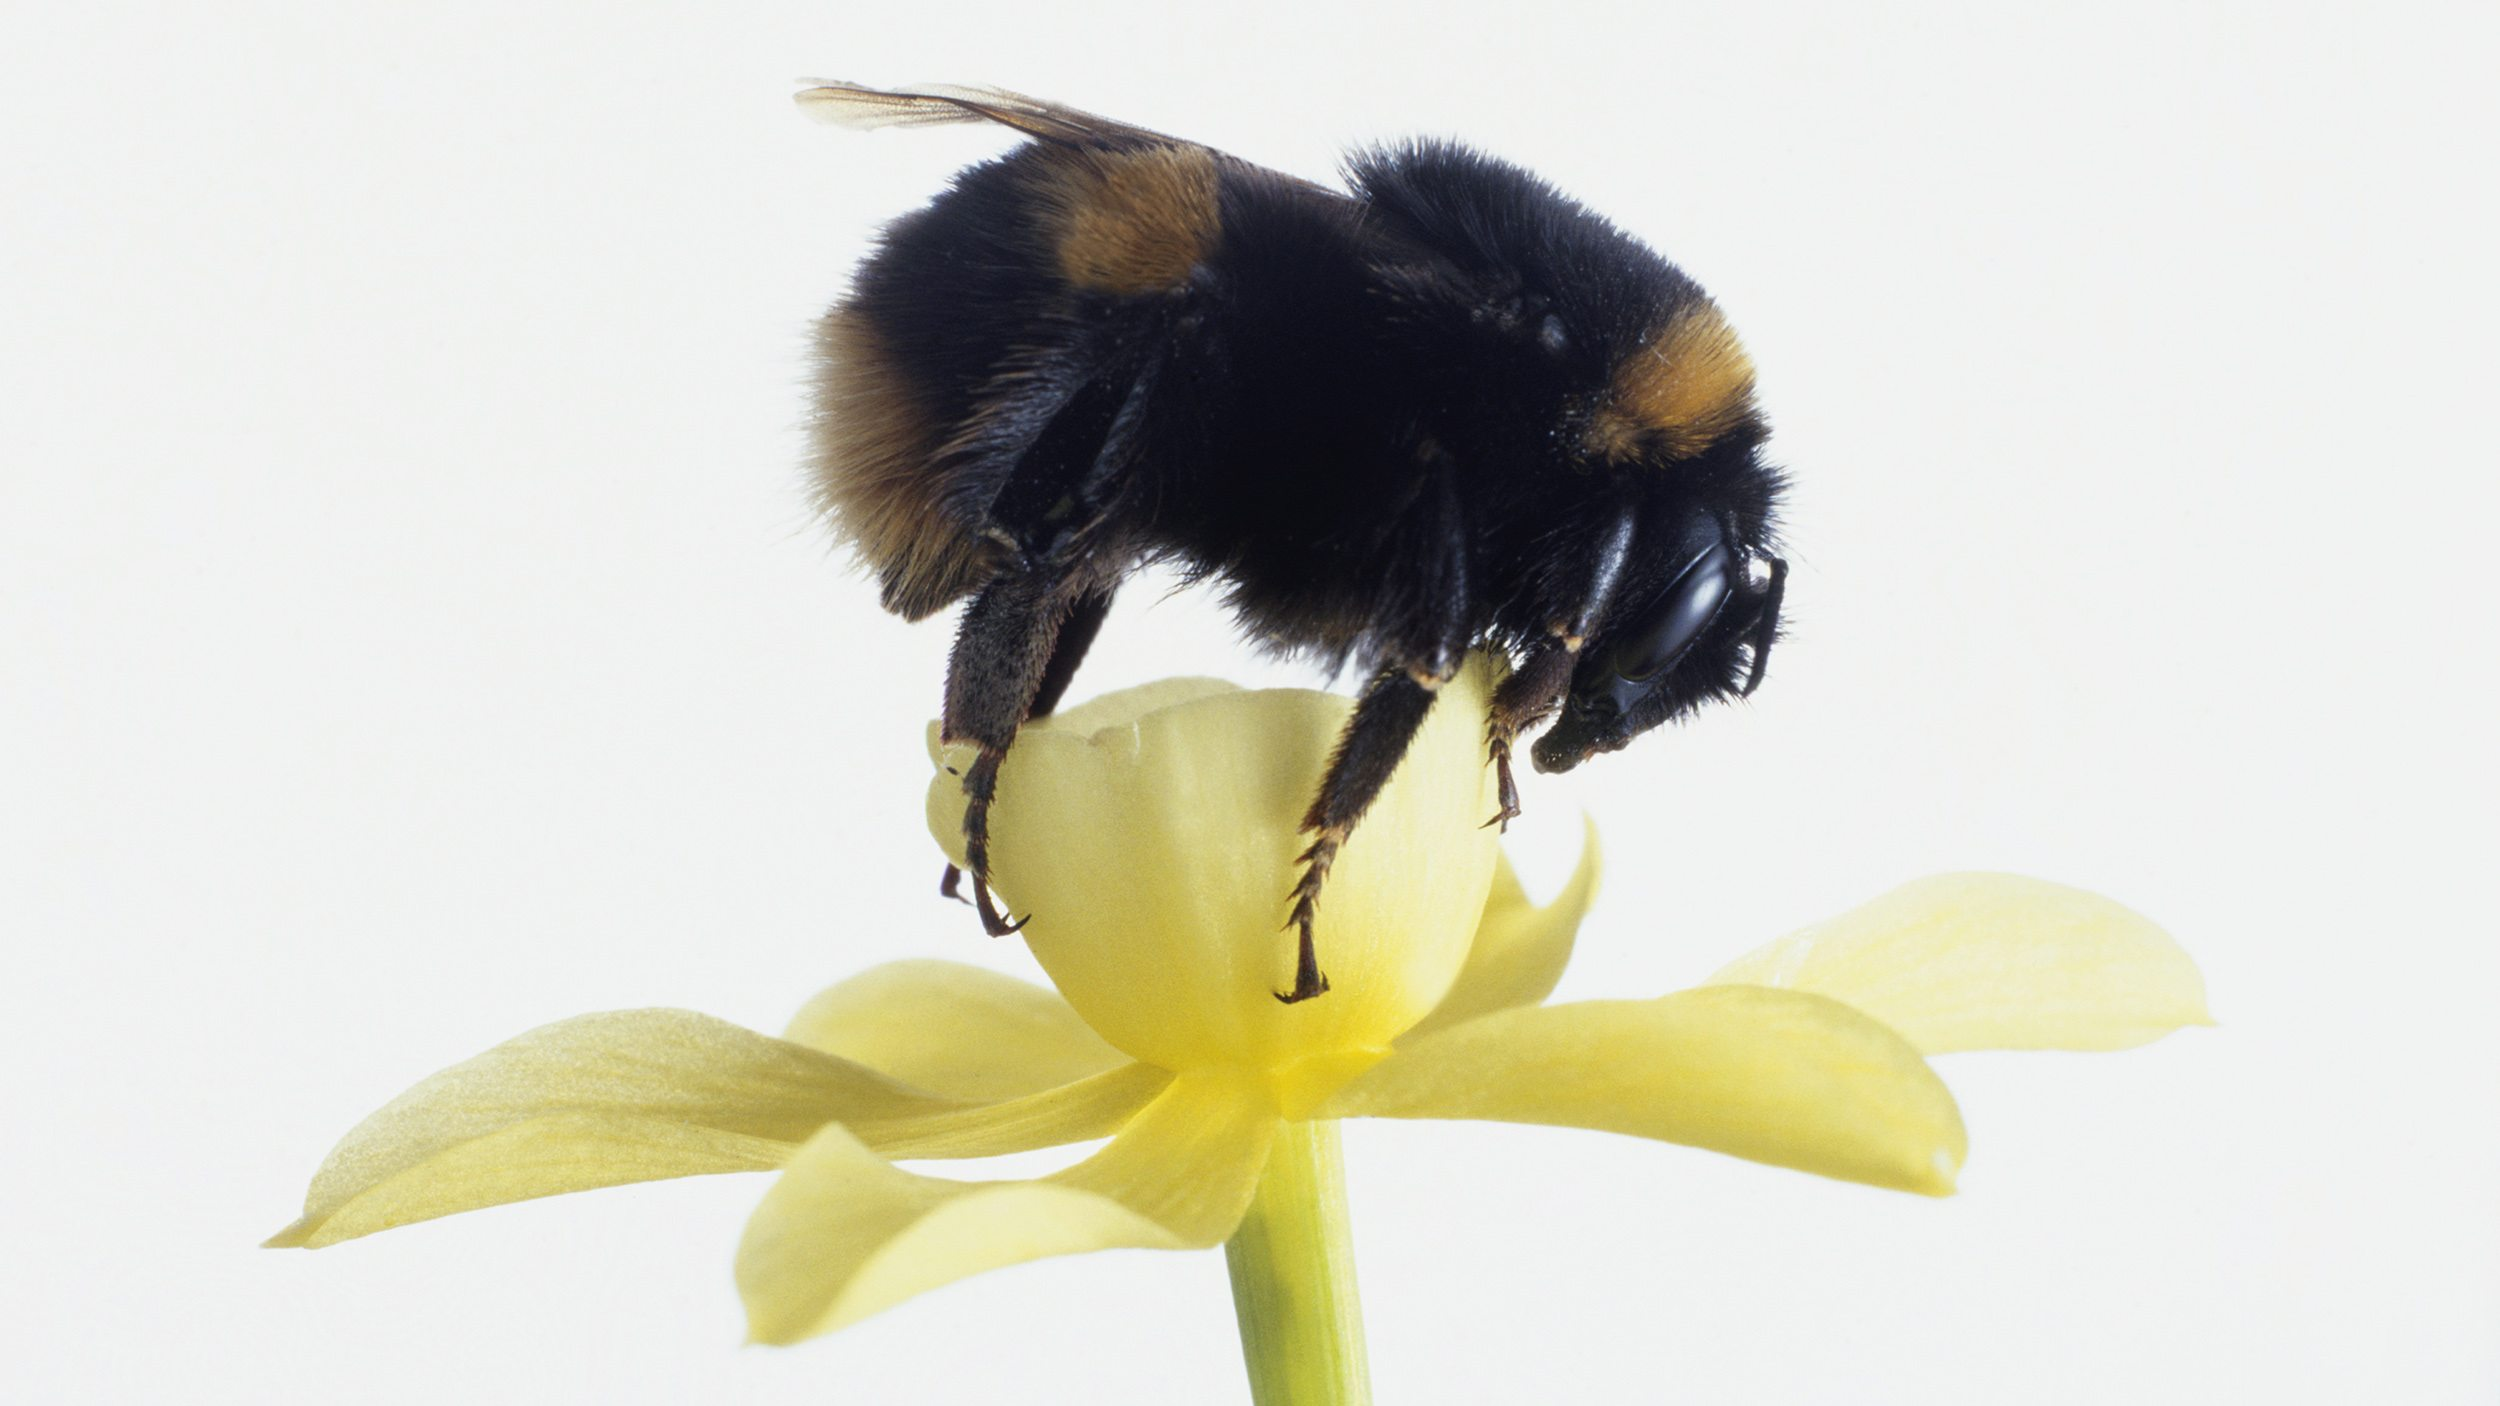 Bumblebee feeding on pollen from a yellow flower